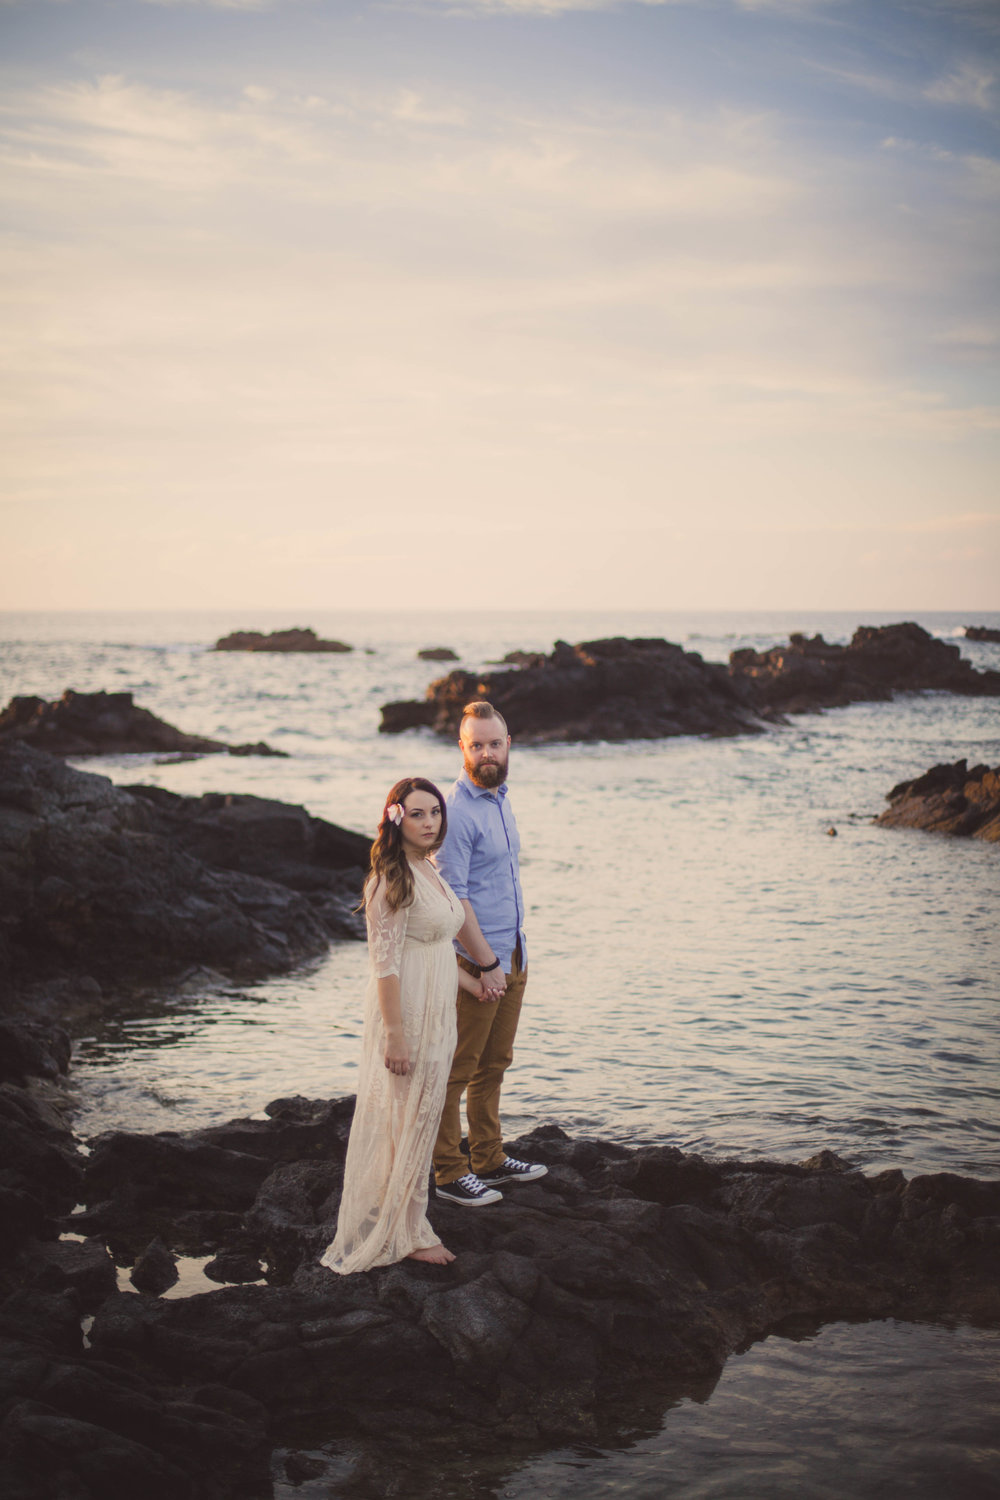 big island hawaii kukio beach engagement © kelilina photography 20171226174146-1.jpg